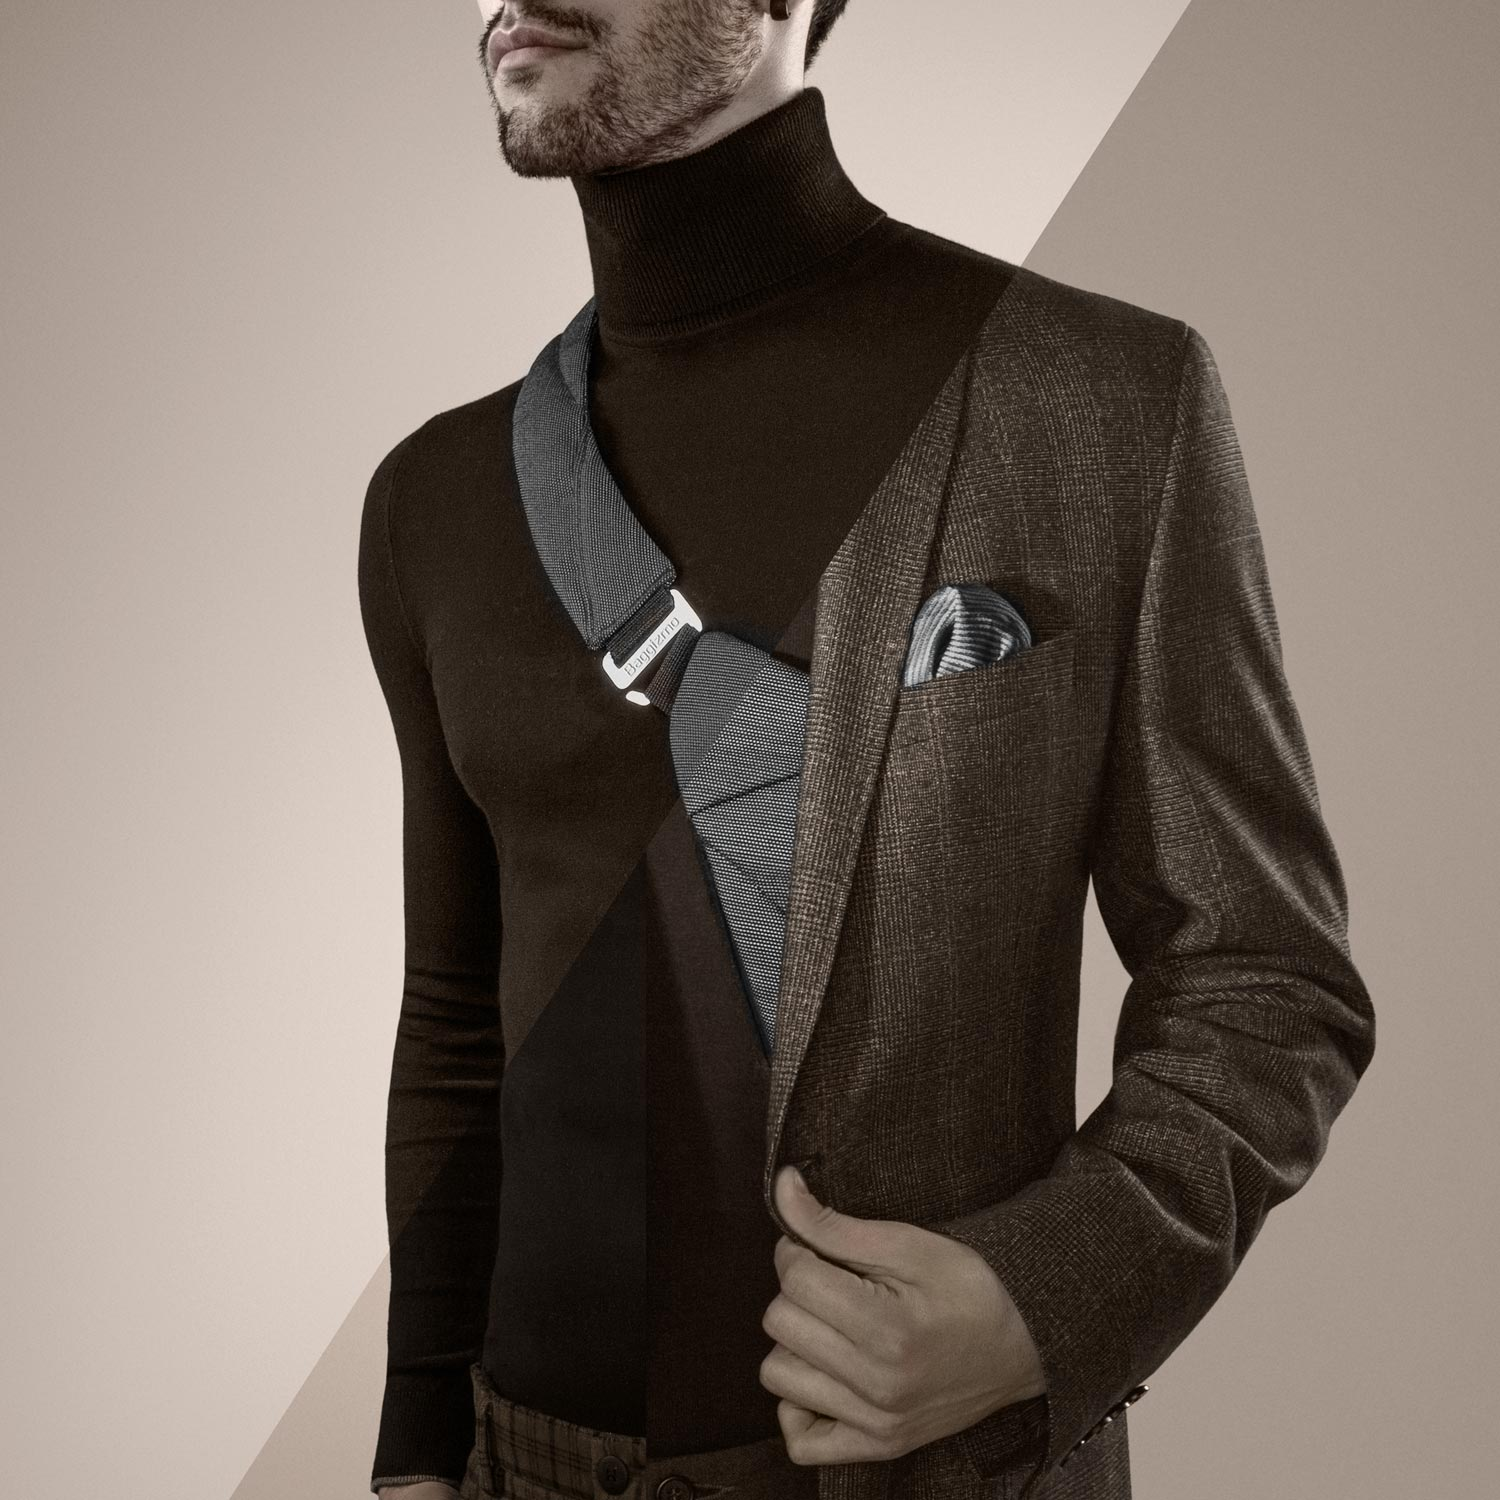 Man wearing a blazer, a turtleneck and slim crossbody bag